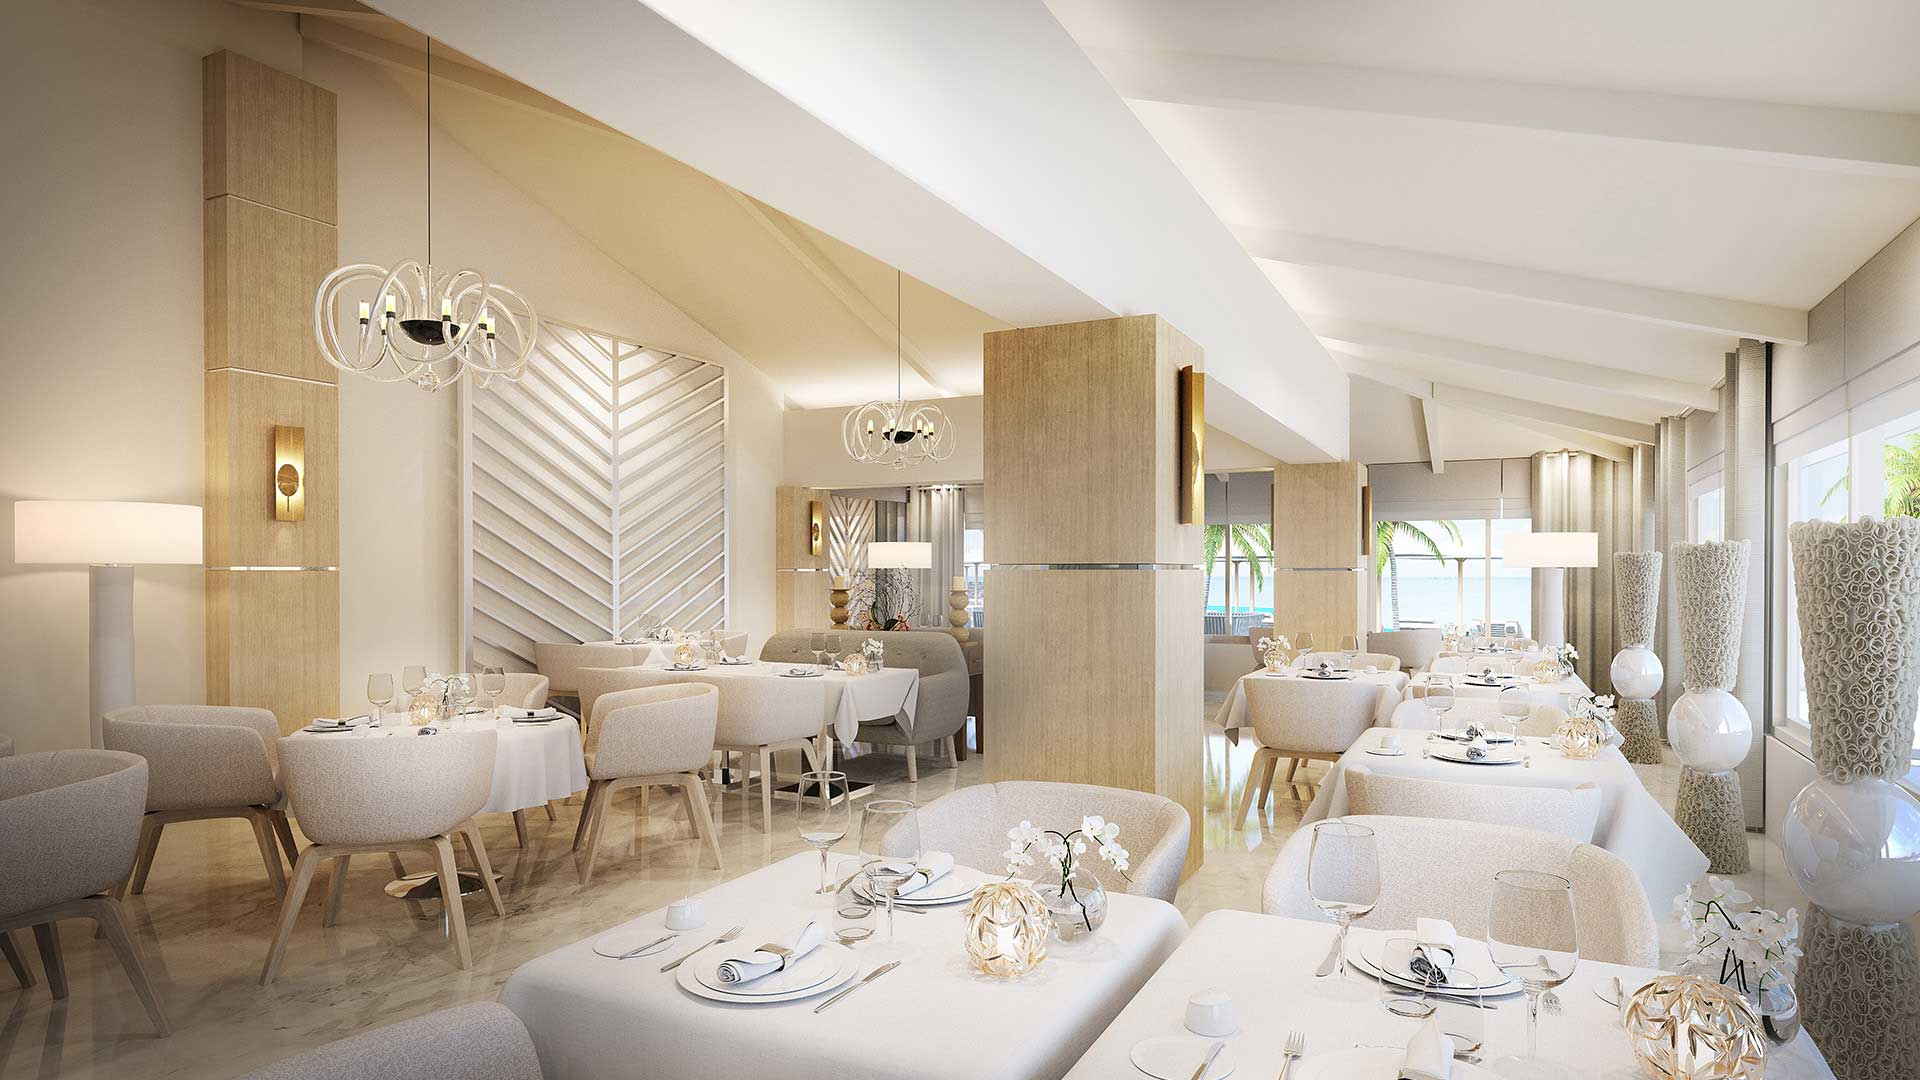 Creation of a 3D perspective of a restaurant made from computer generated images.